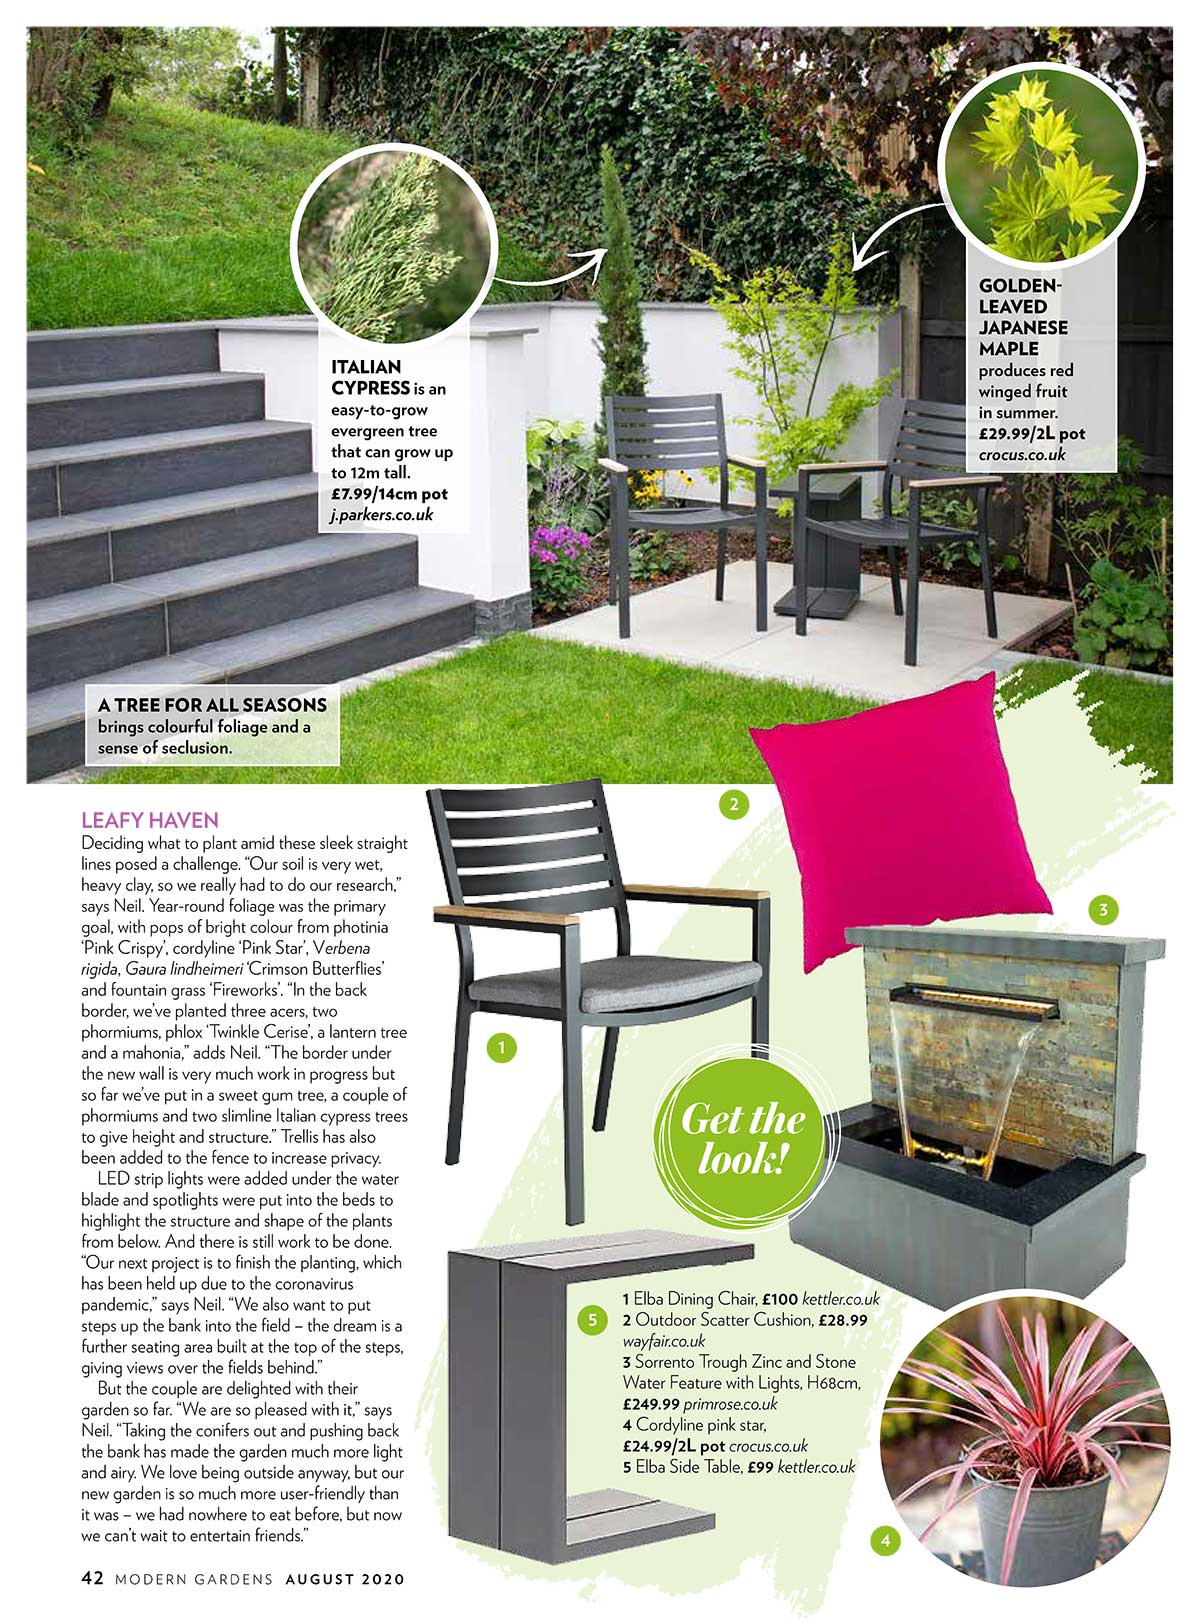 Landscapia Featured in Modern Gardens Magazine!